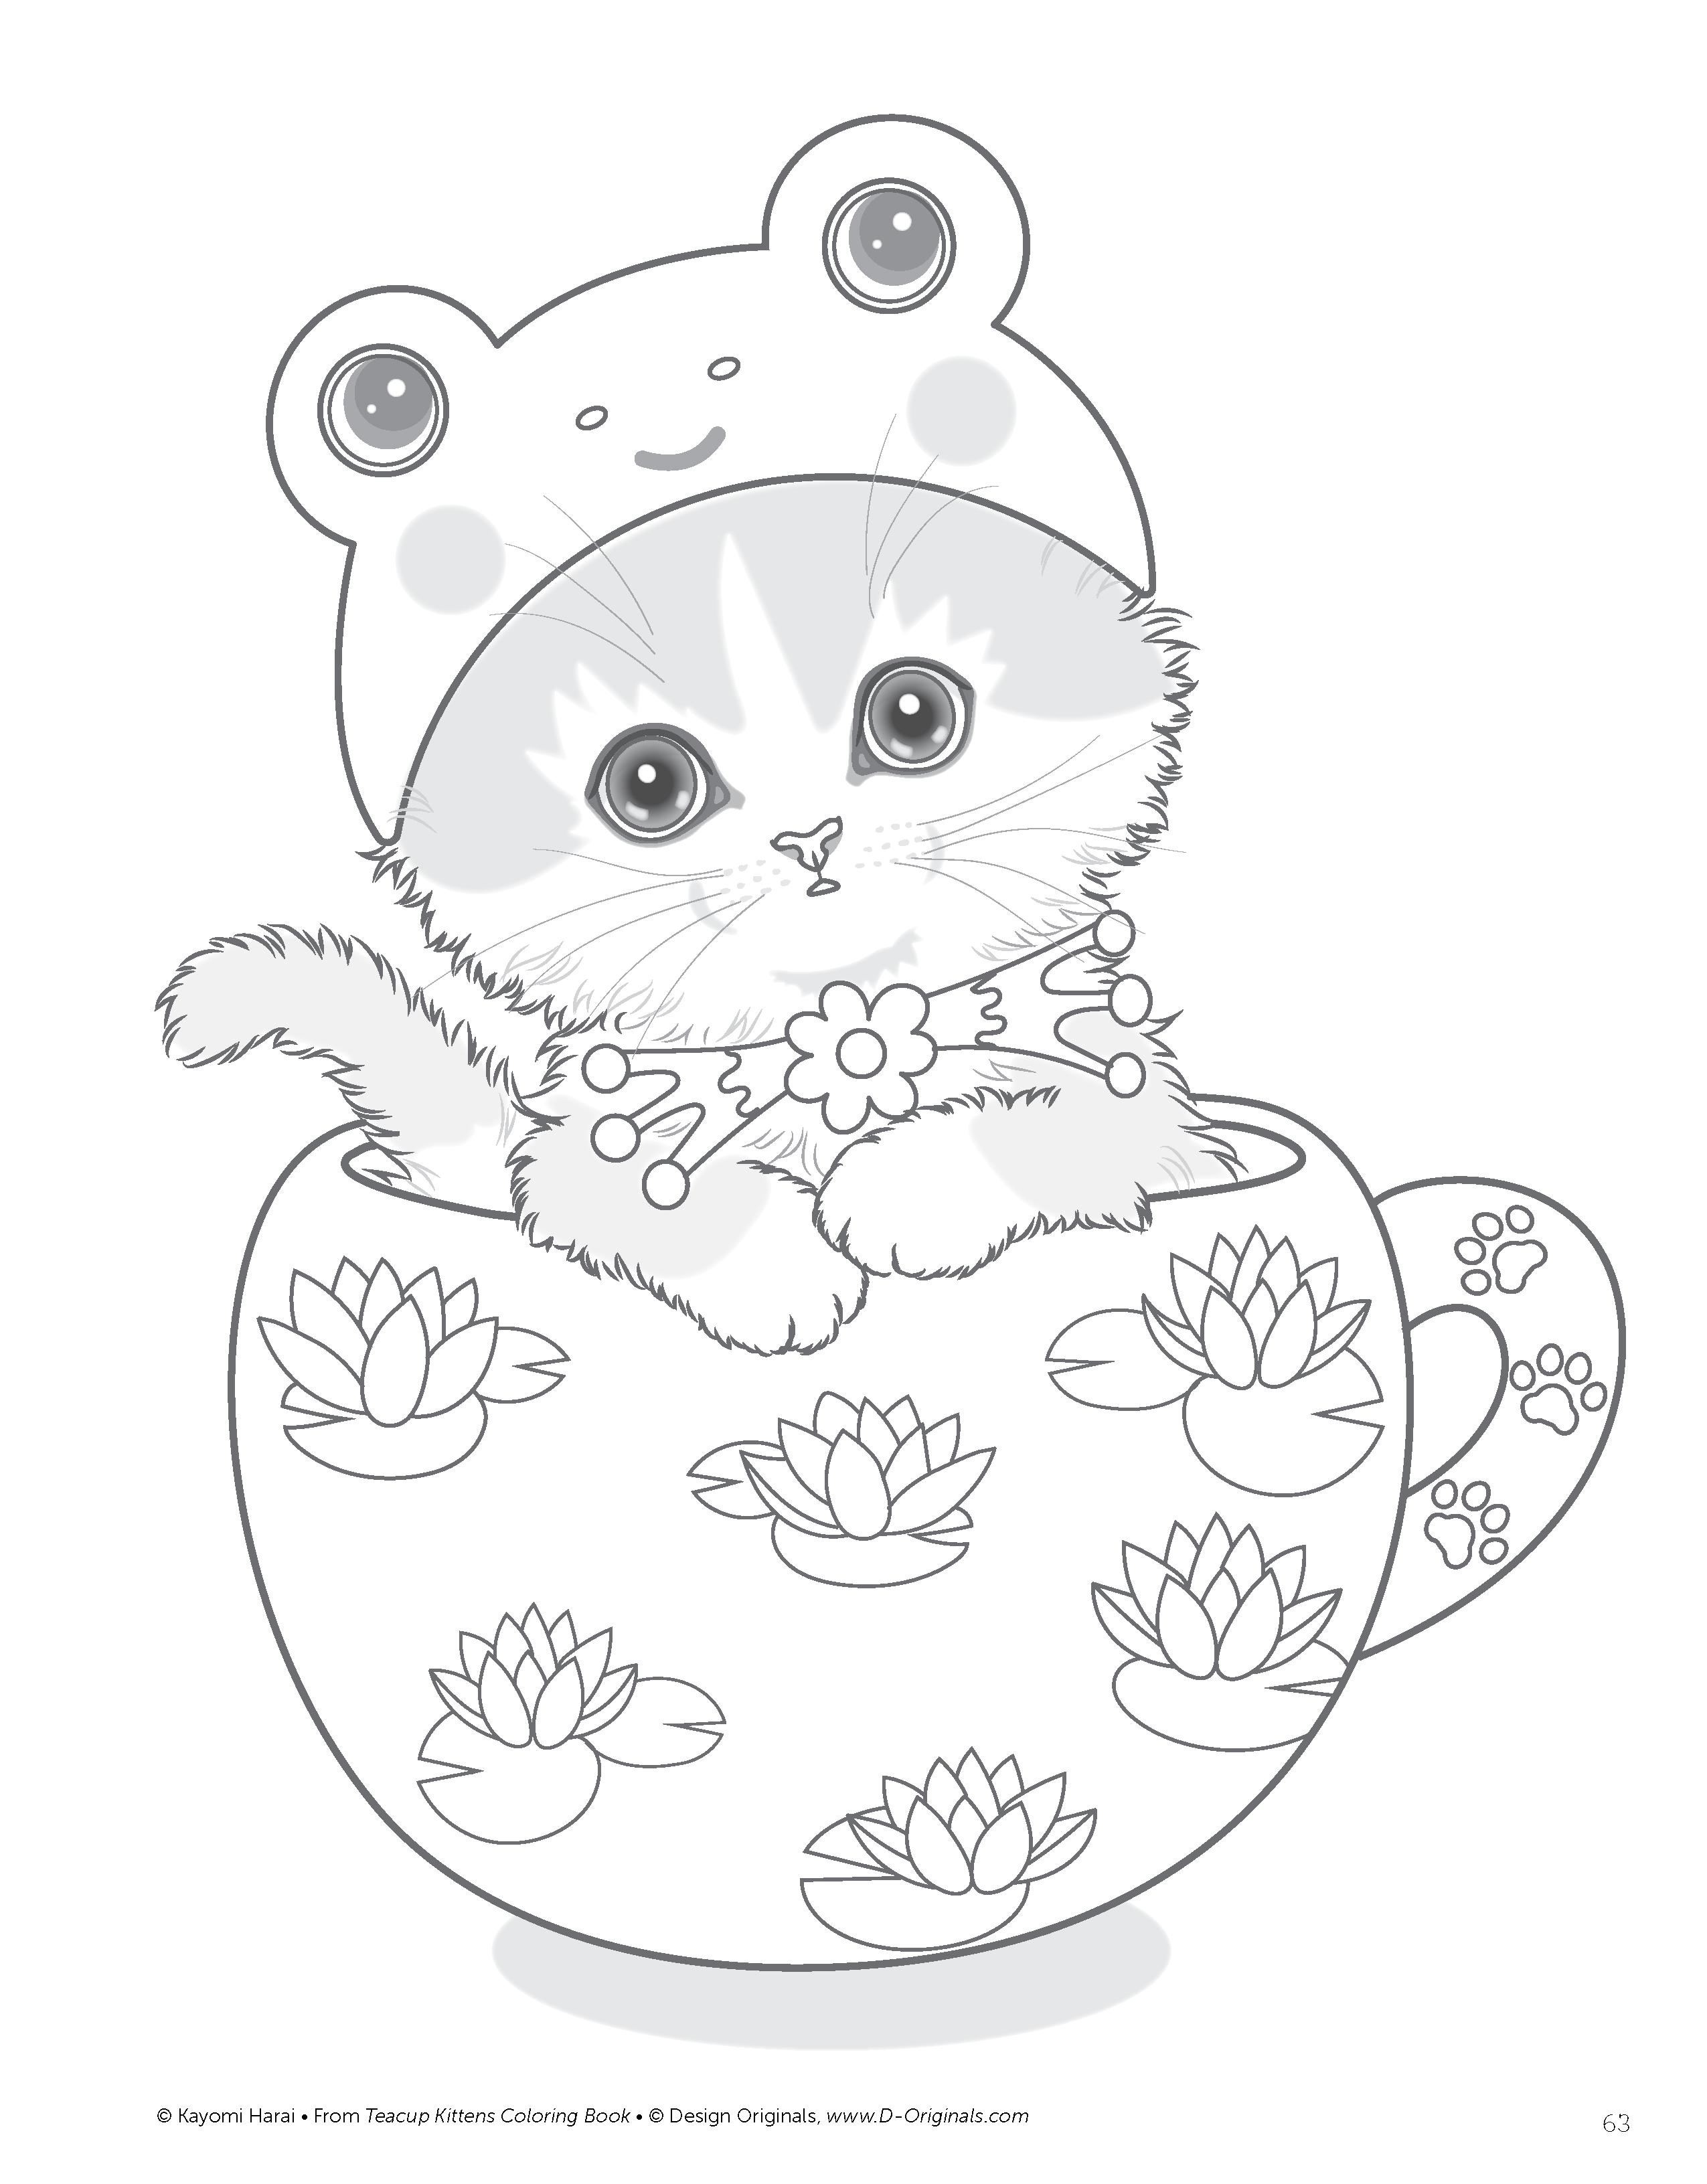 Ausmalbilder Nikolaus : Teacup Kittens Coloring Book Design Originals Kayomi Harai